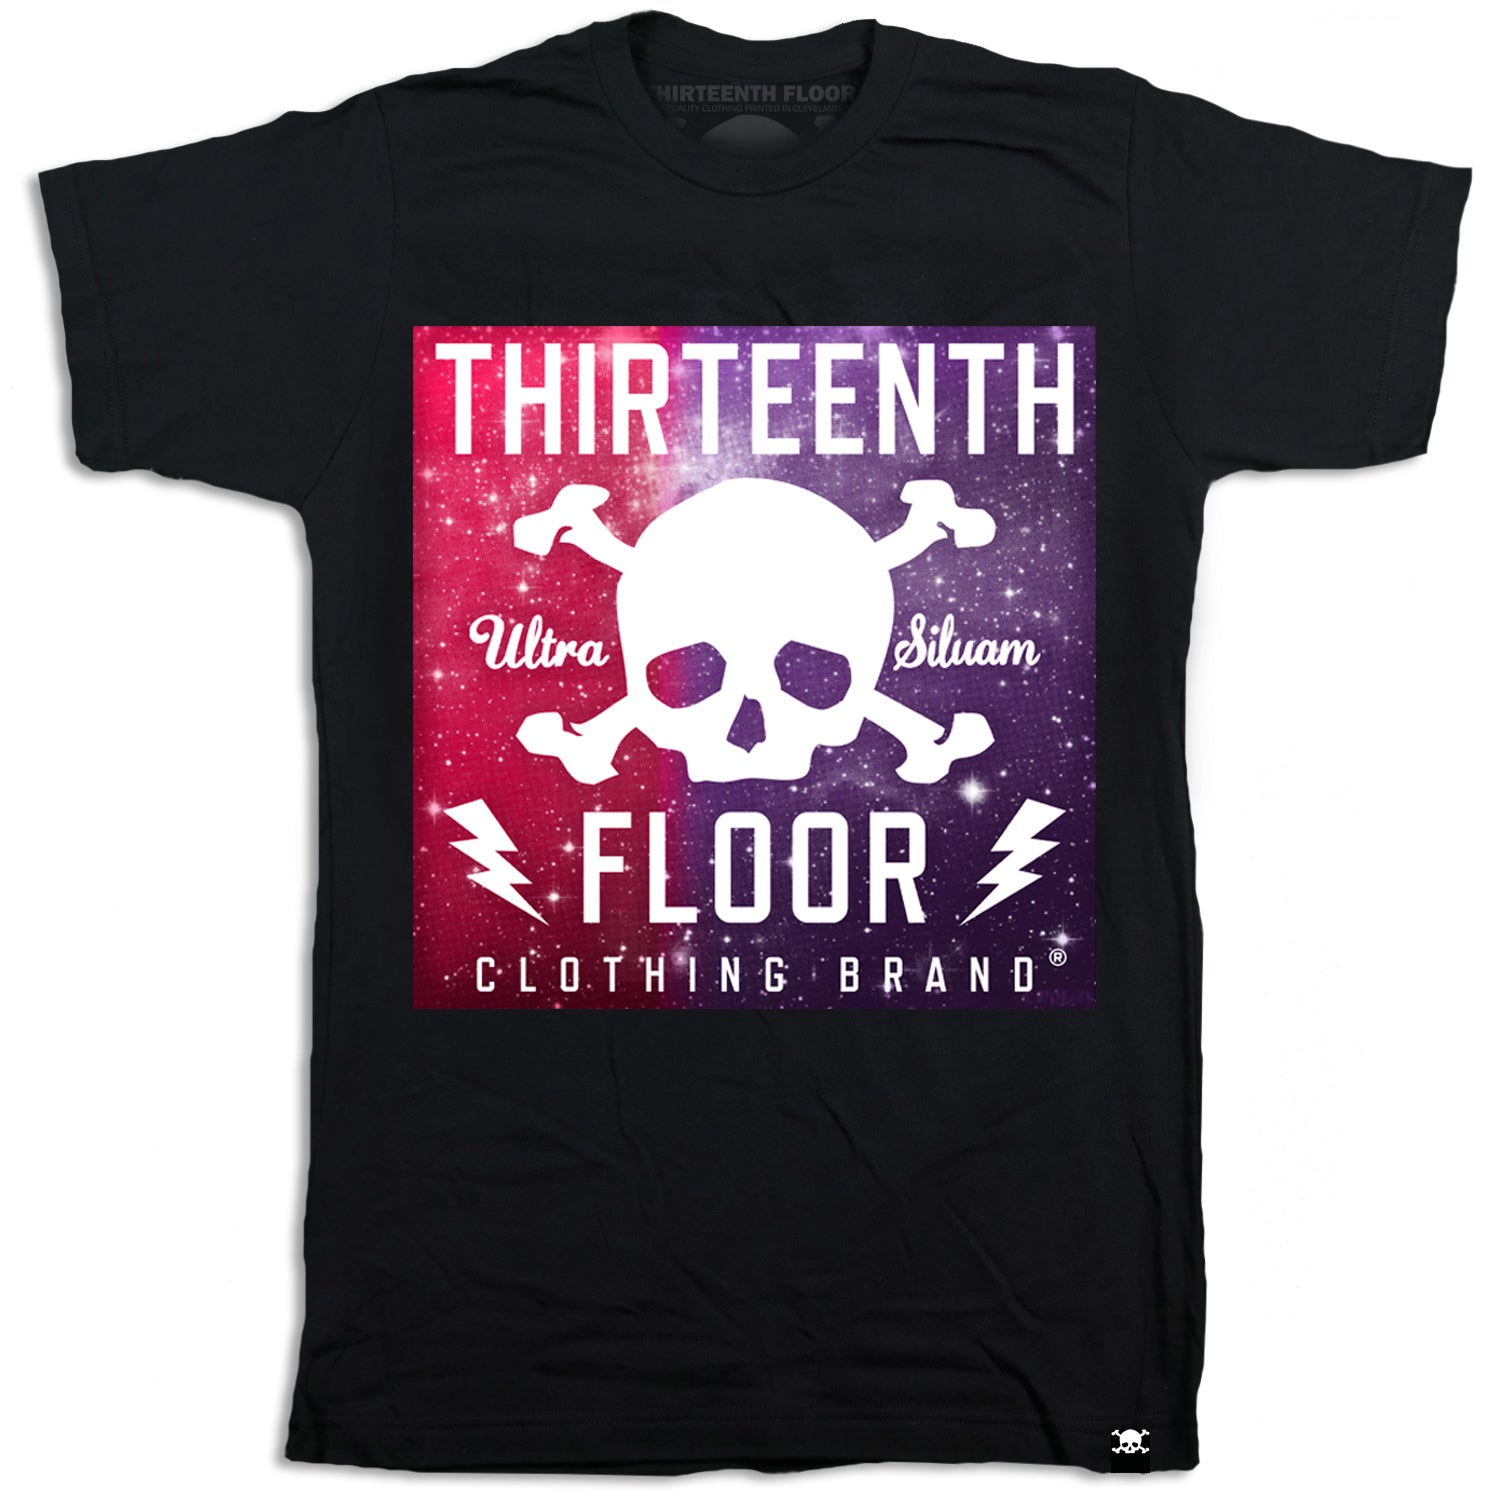 Skull & Bones Purple Galaxy T-shirt